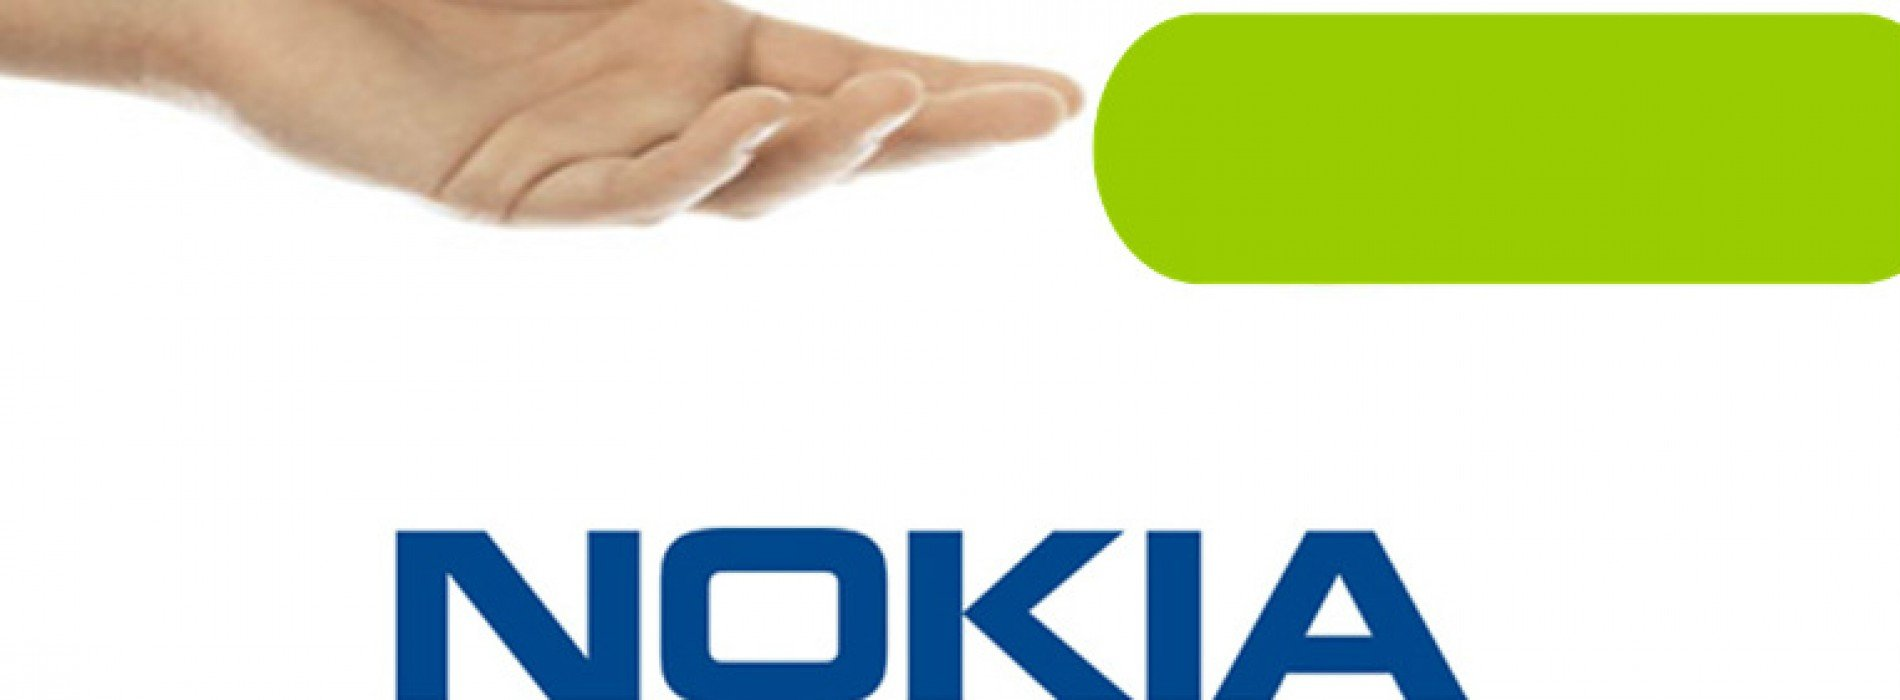 Nokia X (Normandy) specs revealed to be entry-level